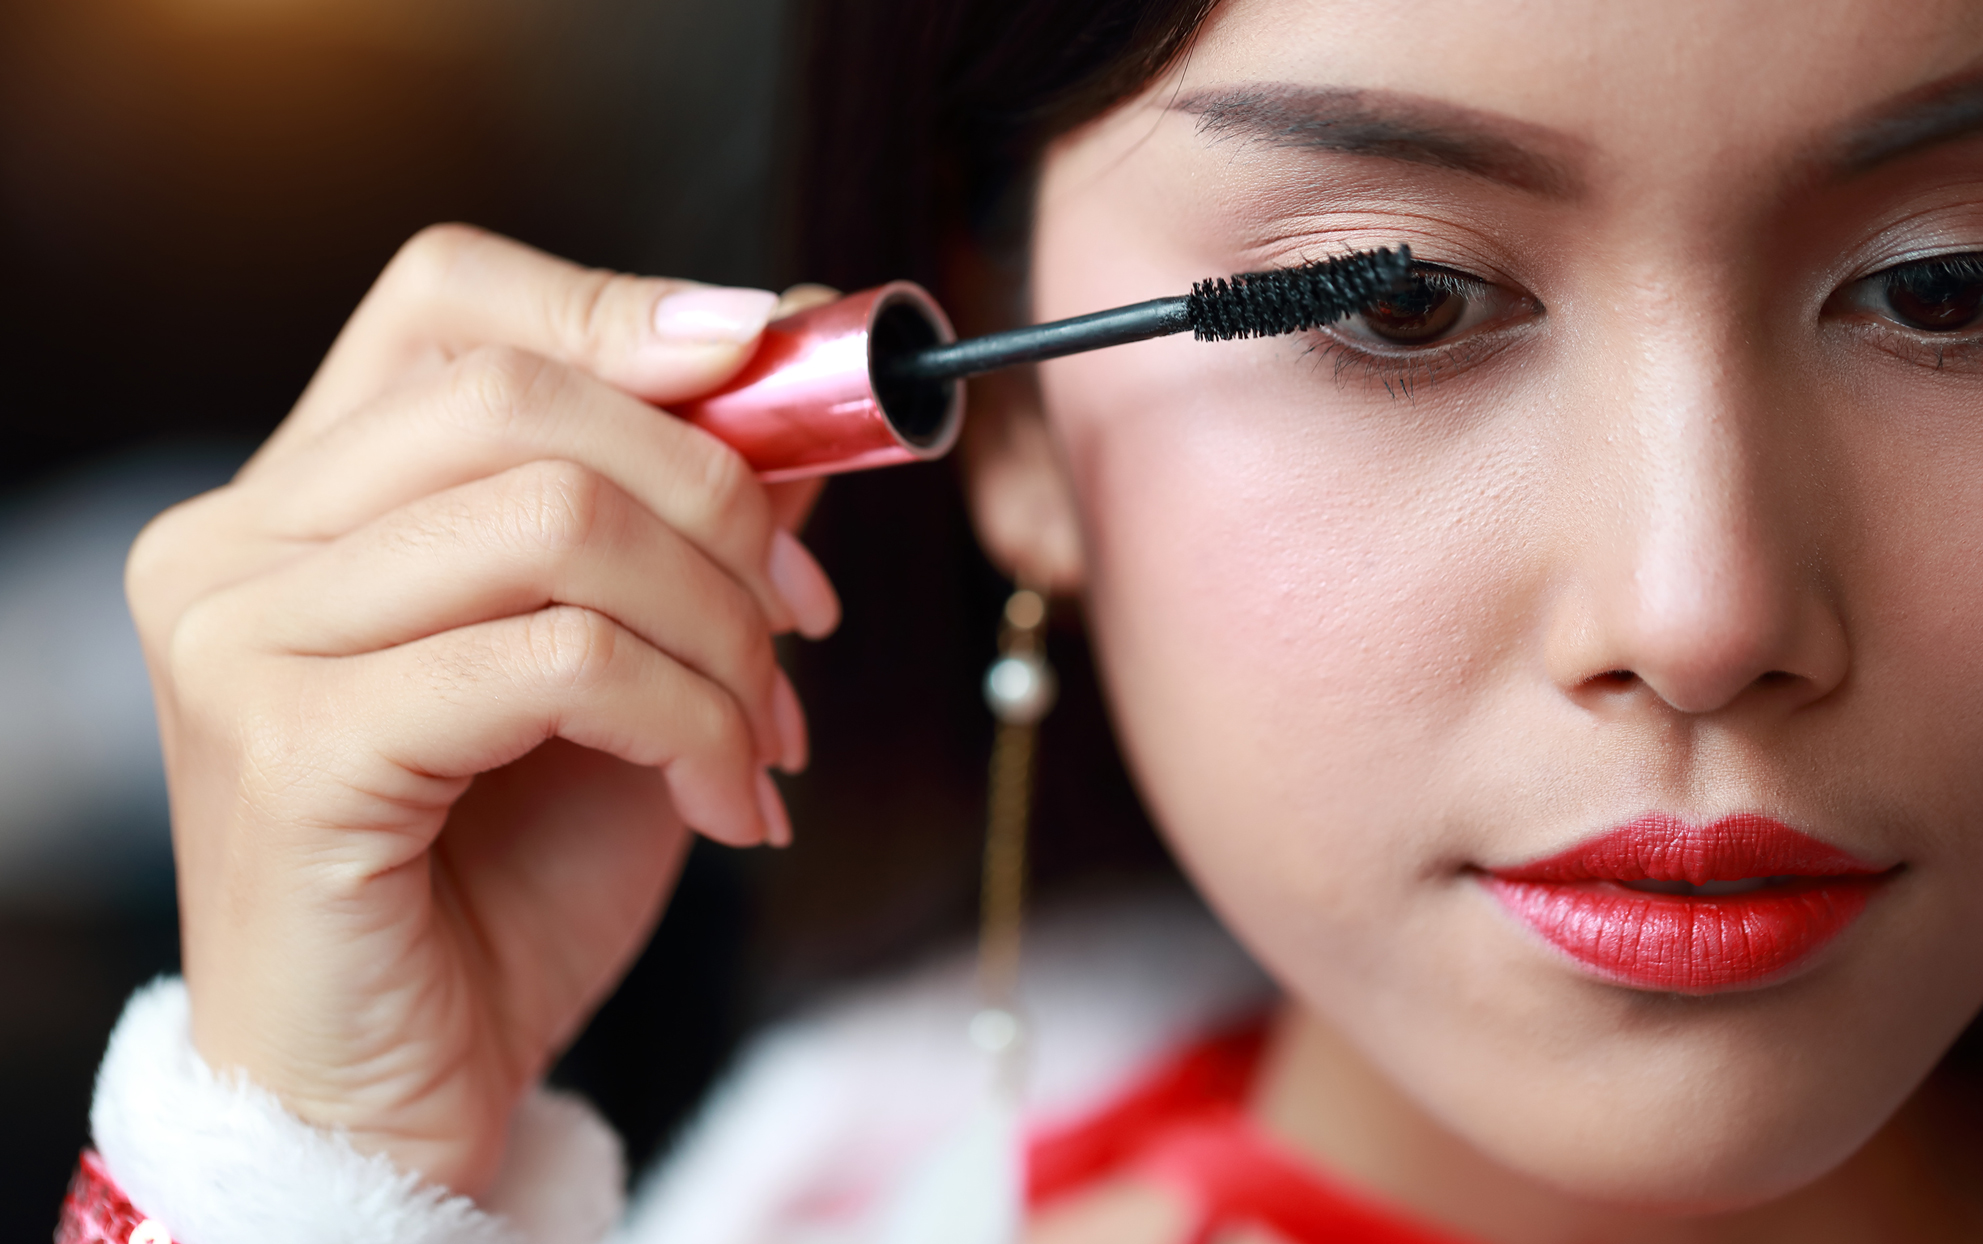 Close up of an Asian woman applying mascara